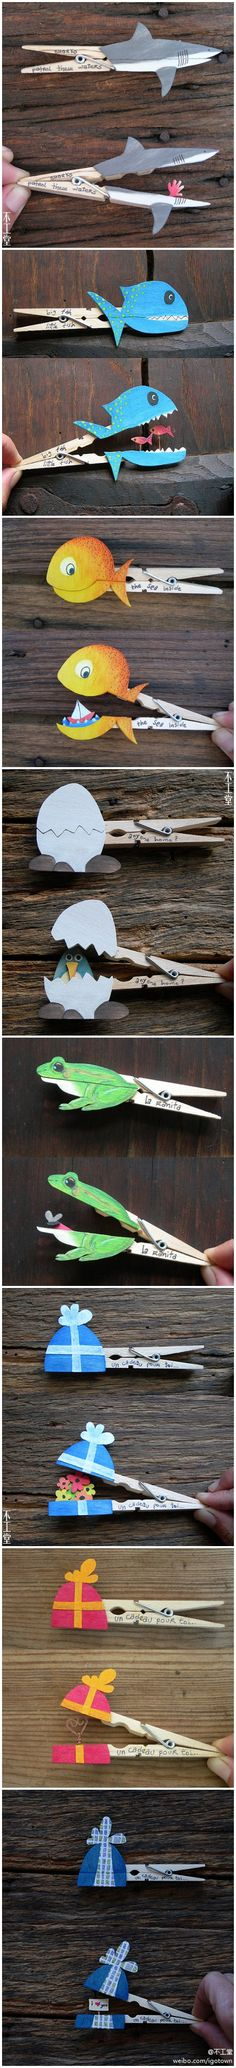 animal clothes pins    (http://www.joybx.com/entry/17843.html)